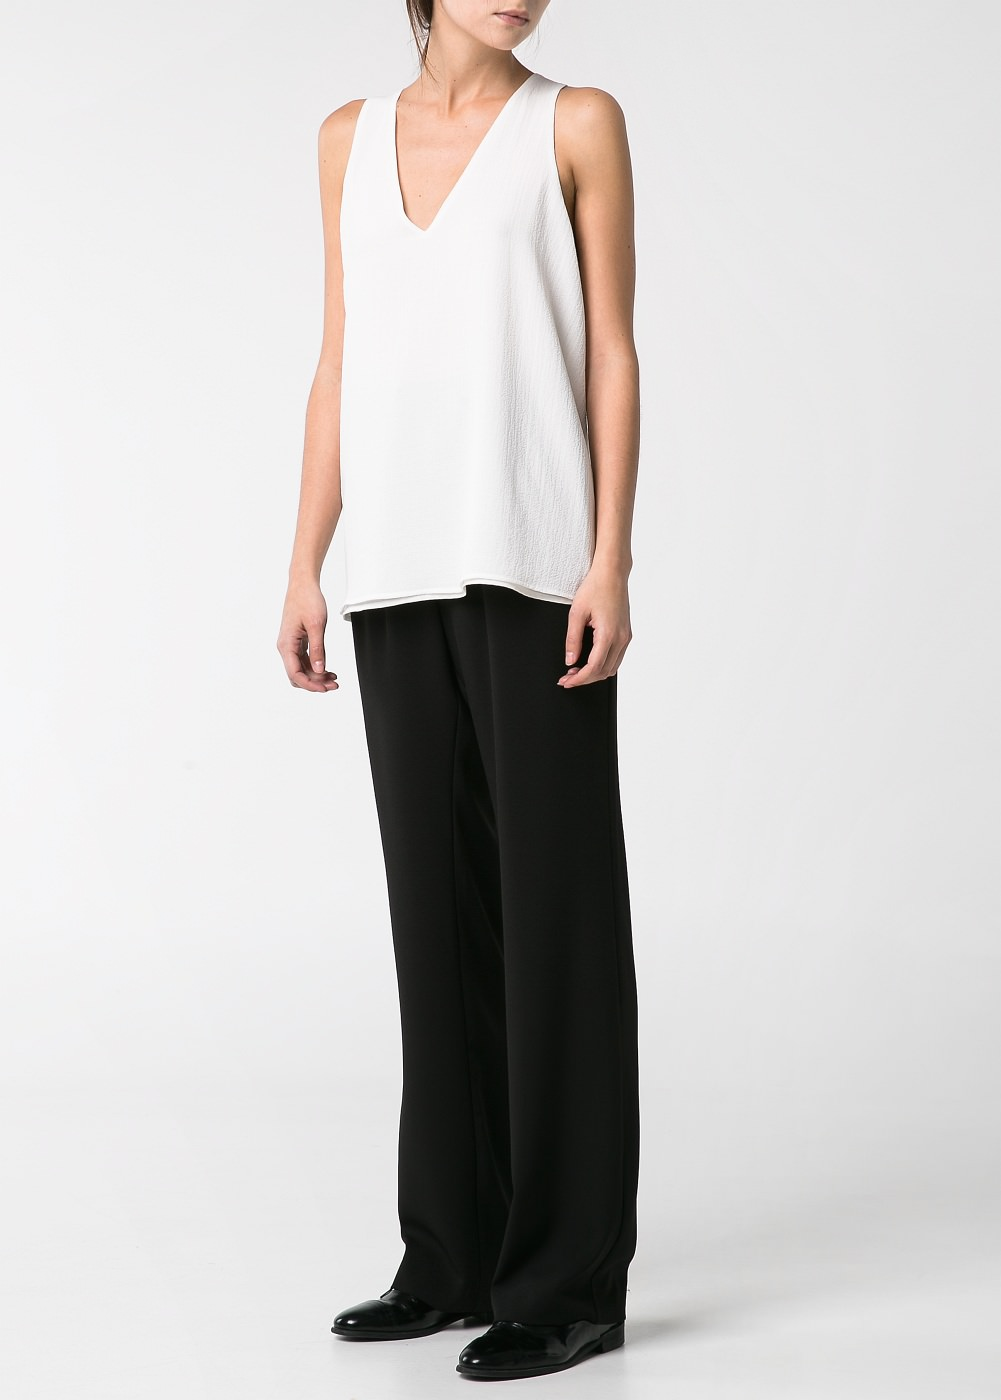 Textured v-neck top -  							  							Women - 							MANGO